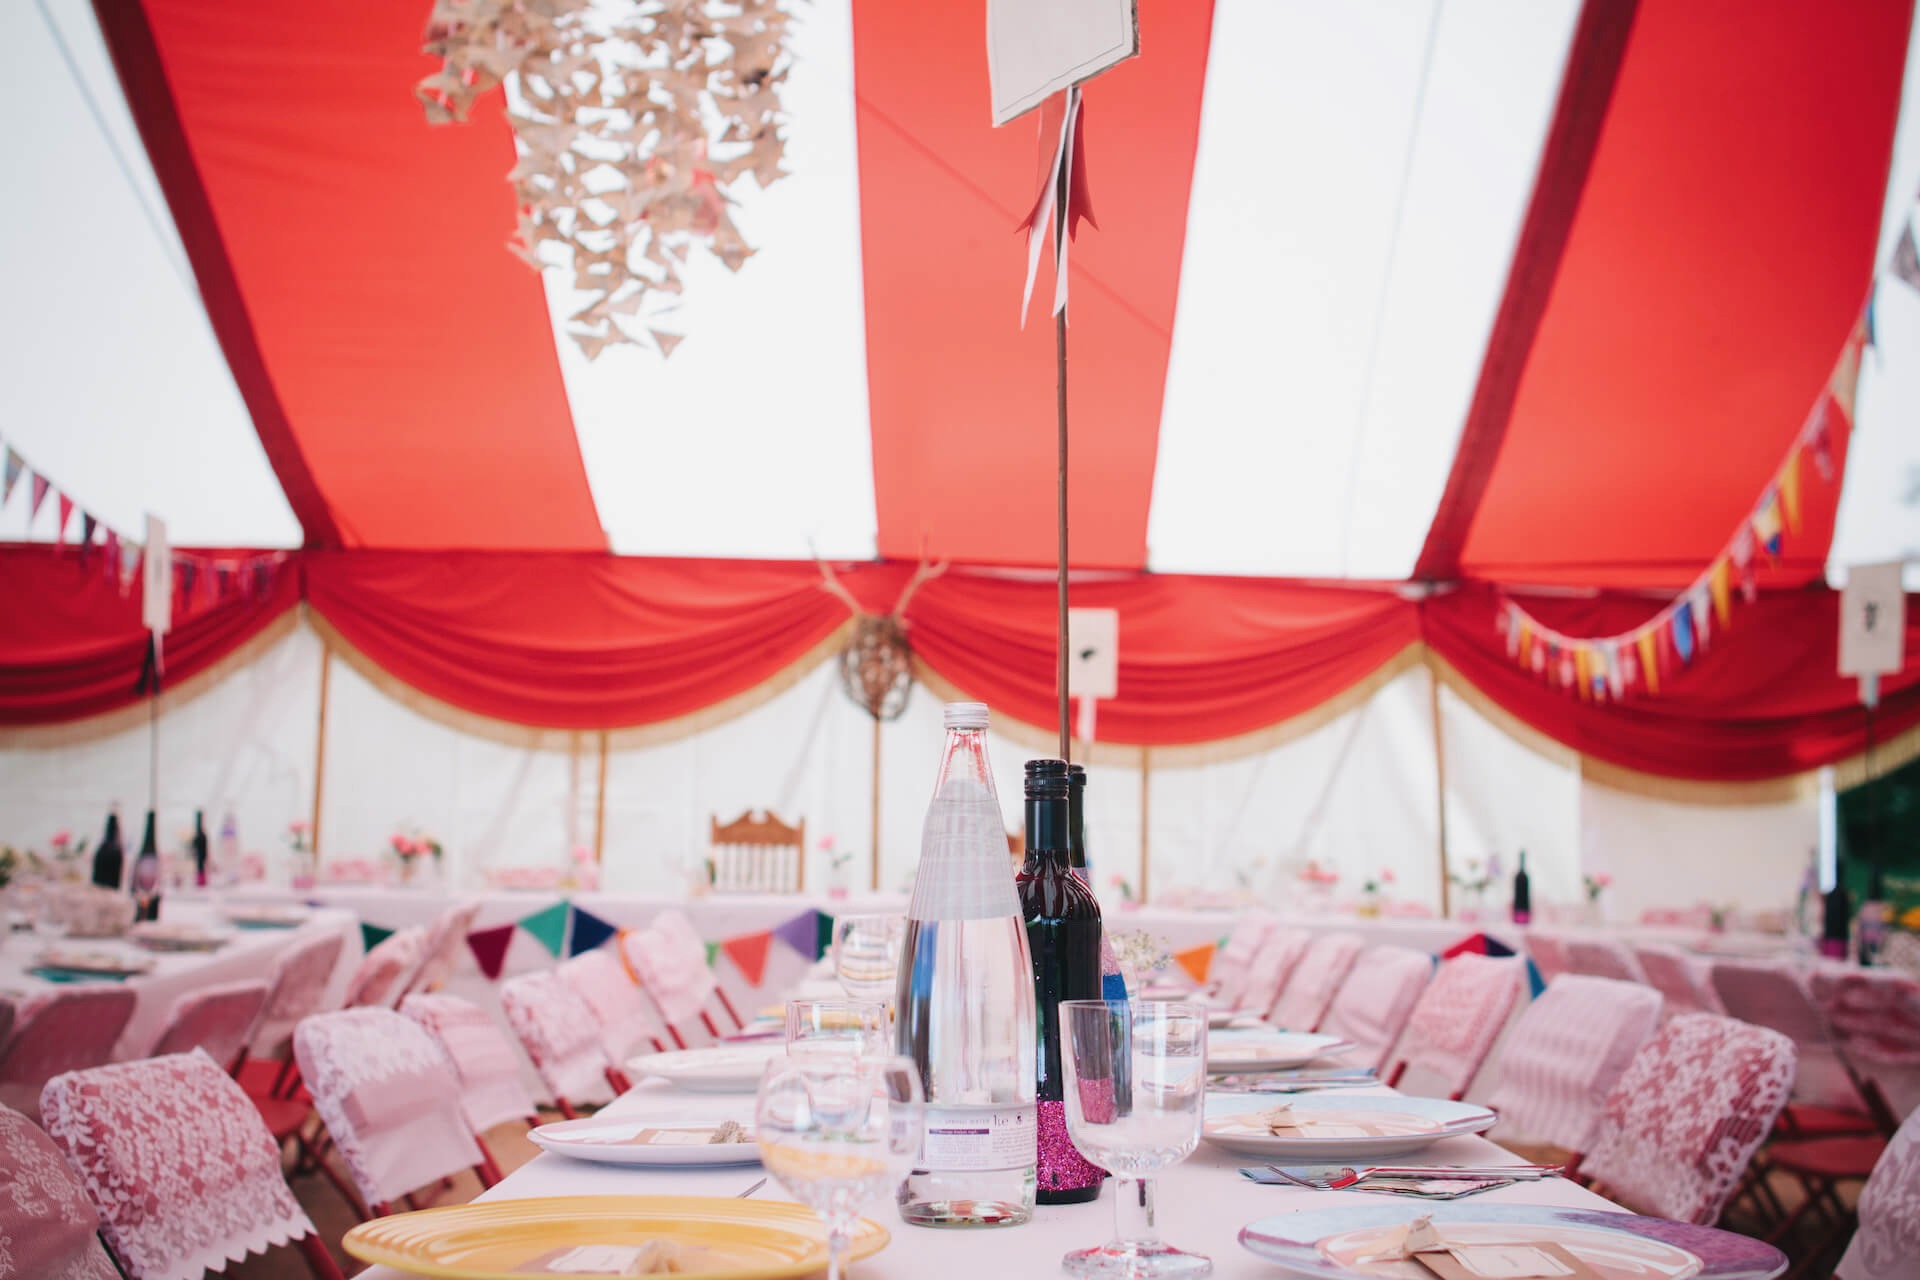 Colourful wedding photography by @anaparkerphotography